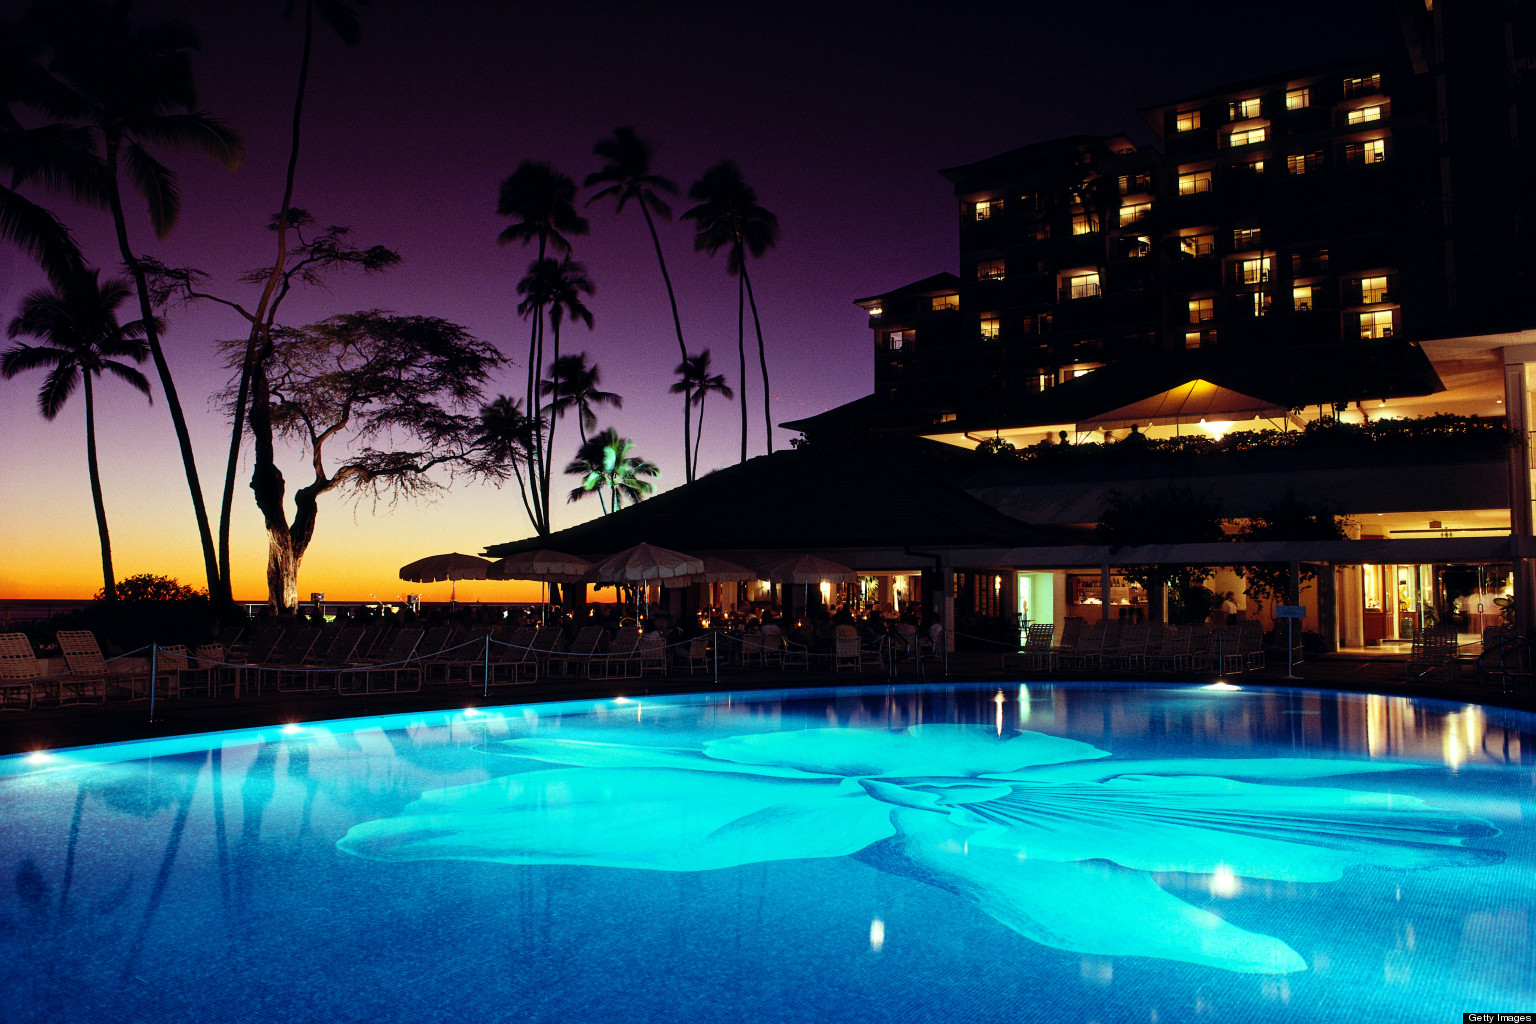 Top Luxury Hotels in America - Halekulani - Waikiki, HI - hi oahu, waikiki, halekulani hotel, lit pool at twilight exterior architecture Top Luxury Hotels in America Top Luxury Hotels in America for the Perfect End of Summer Getaway Halekulani Waikiki HI 2